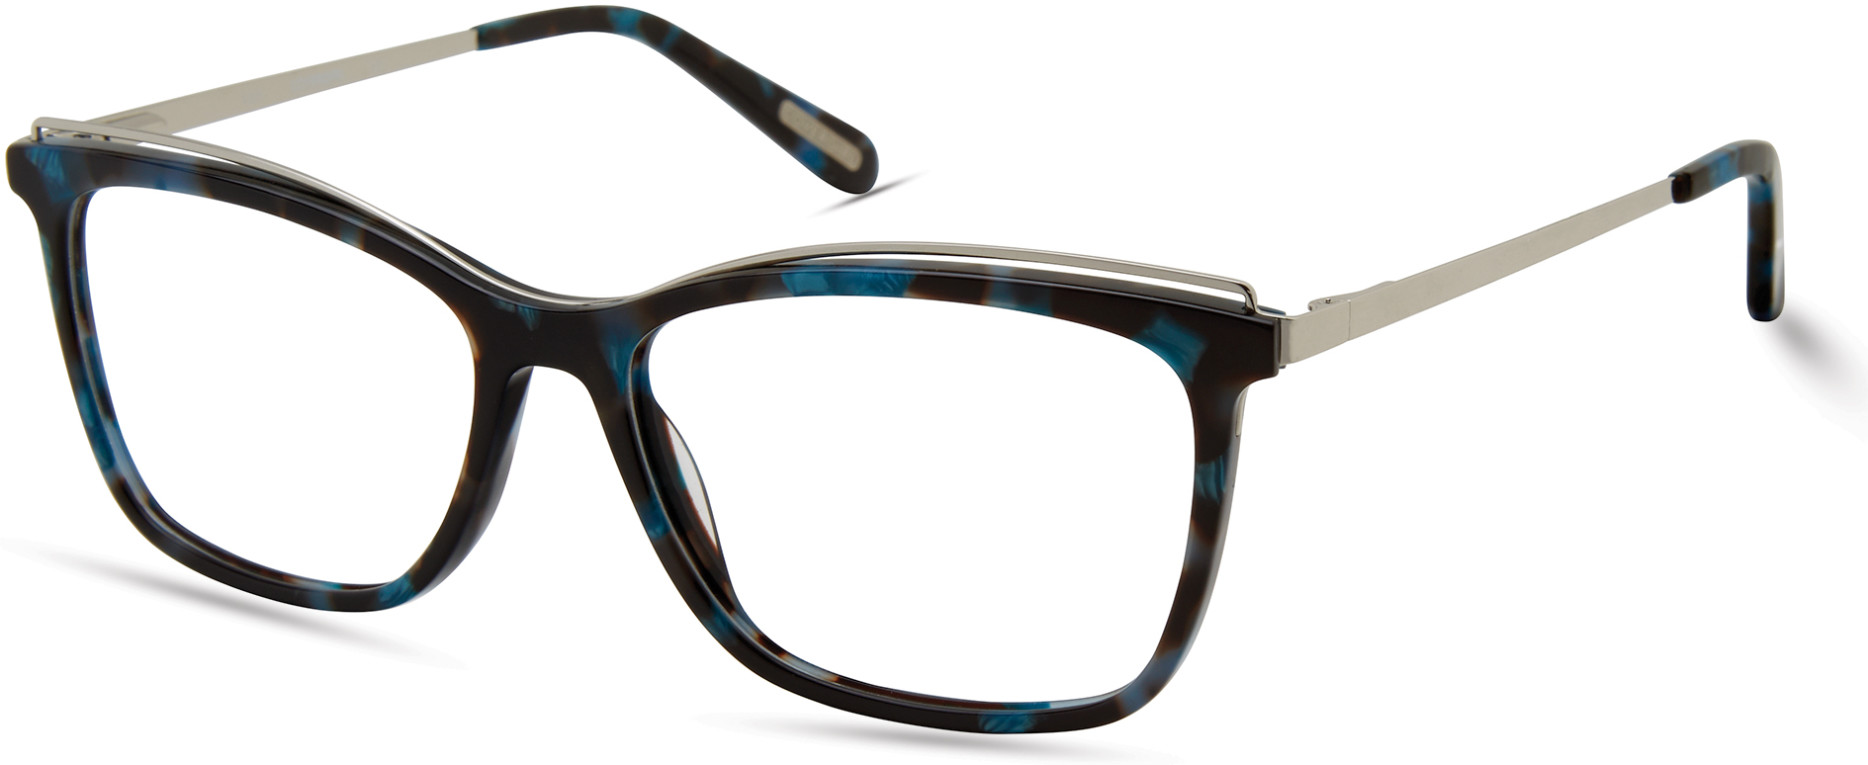 Cover Girl Eyeglasses<br>CG 4002